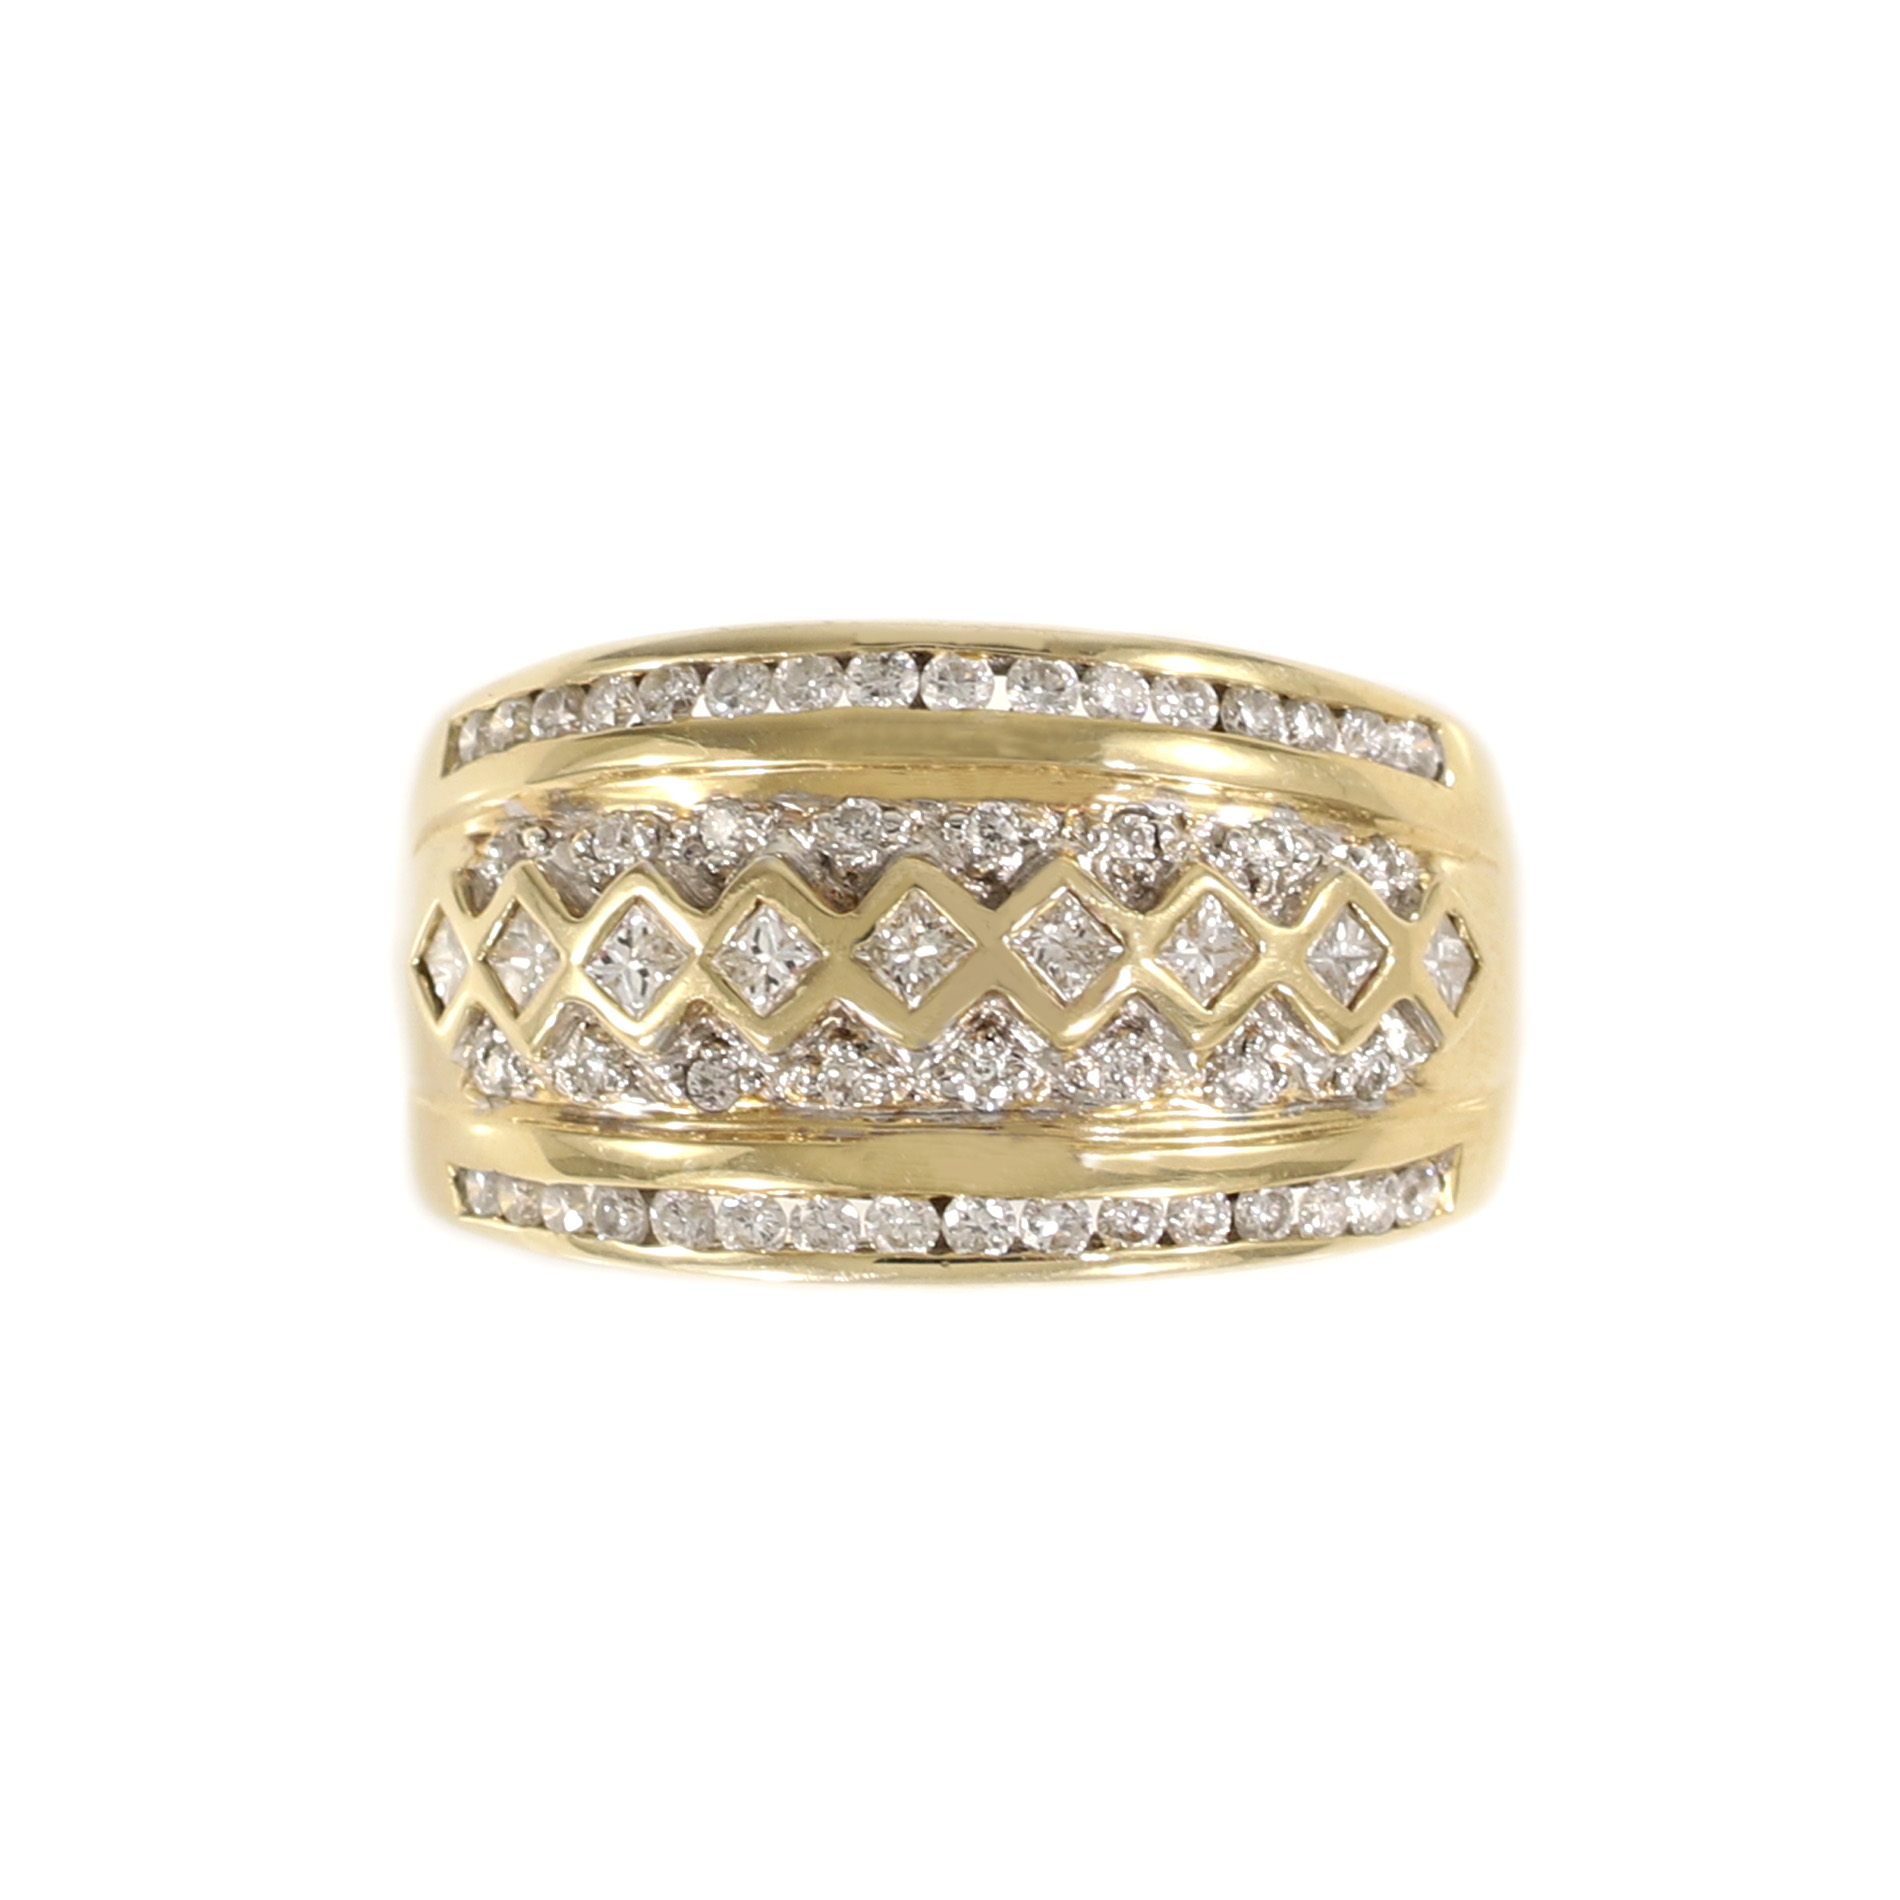 rings large thick solitaire her gold for of wedding diamond wide stones band size with bands